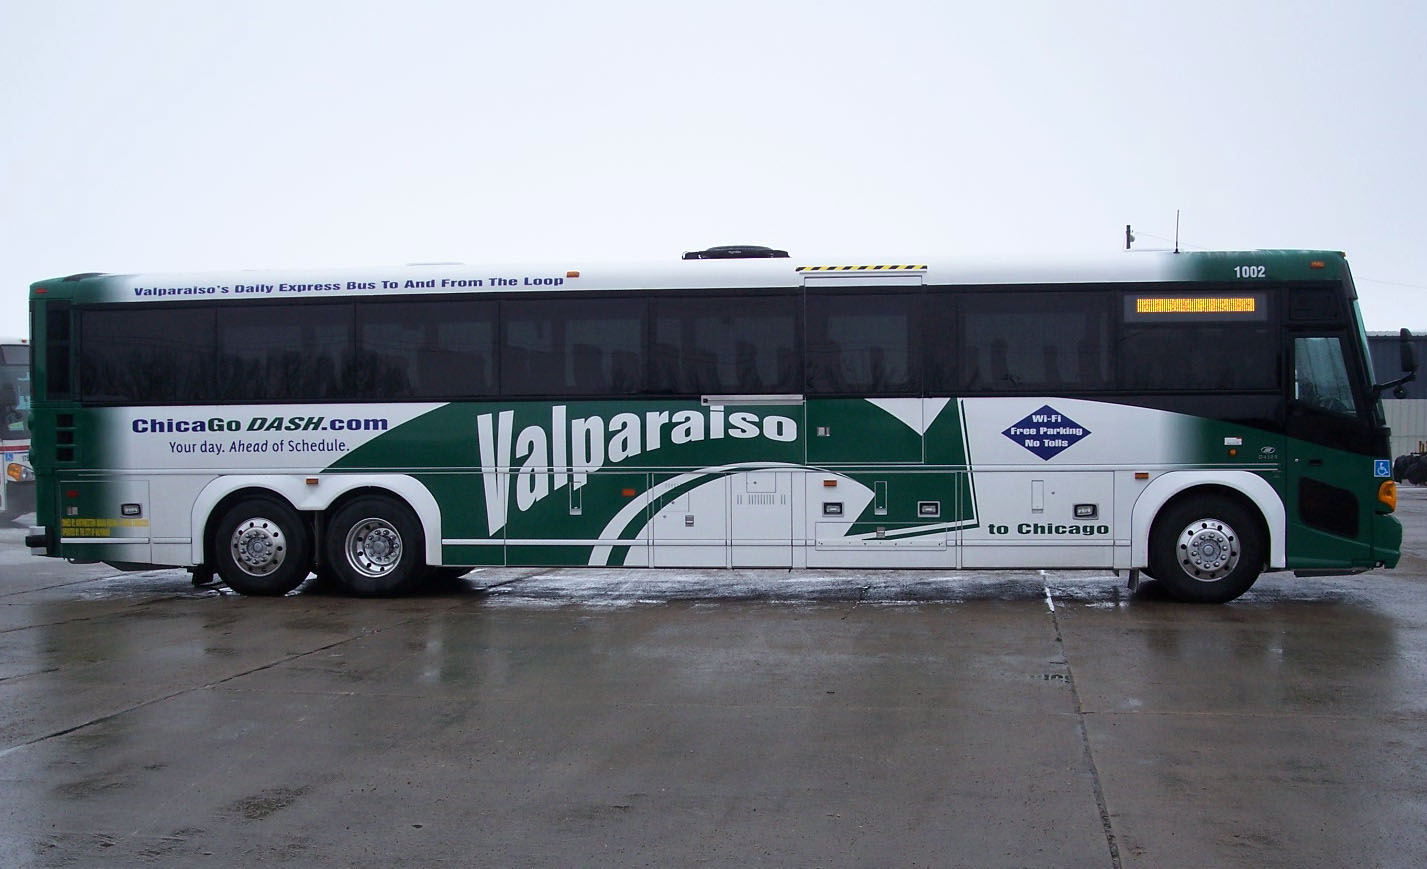 morse + harris marketing: city of valpo's chicago dash bus wraps